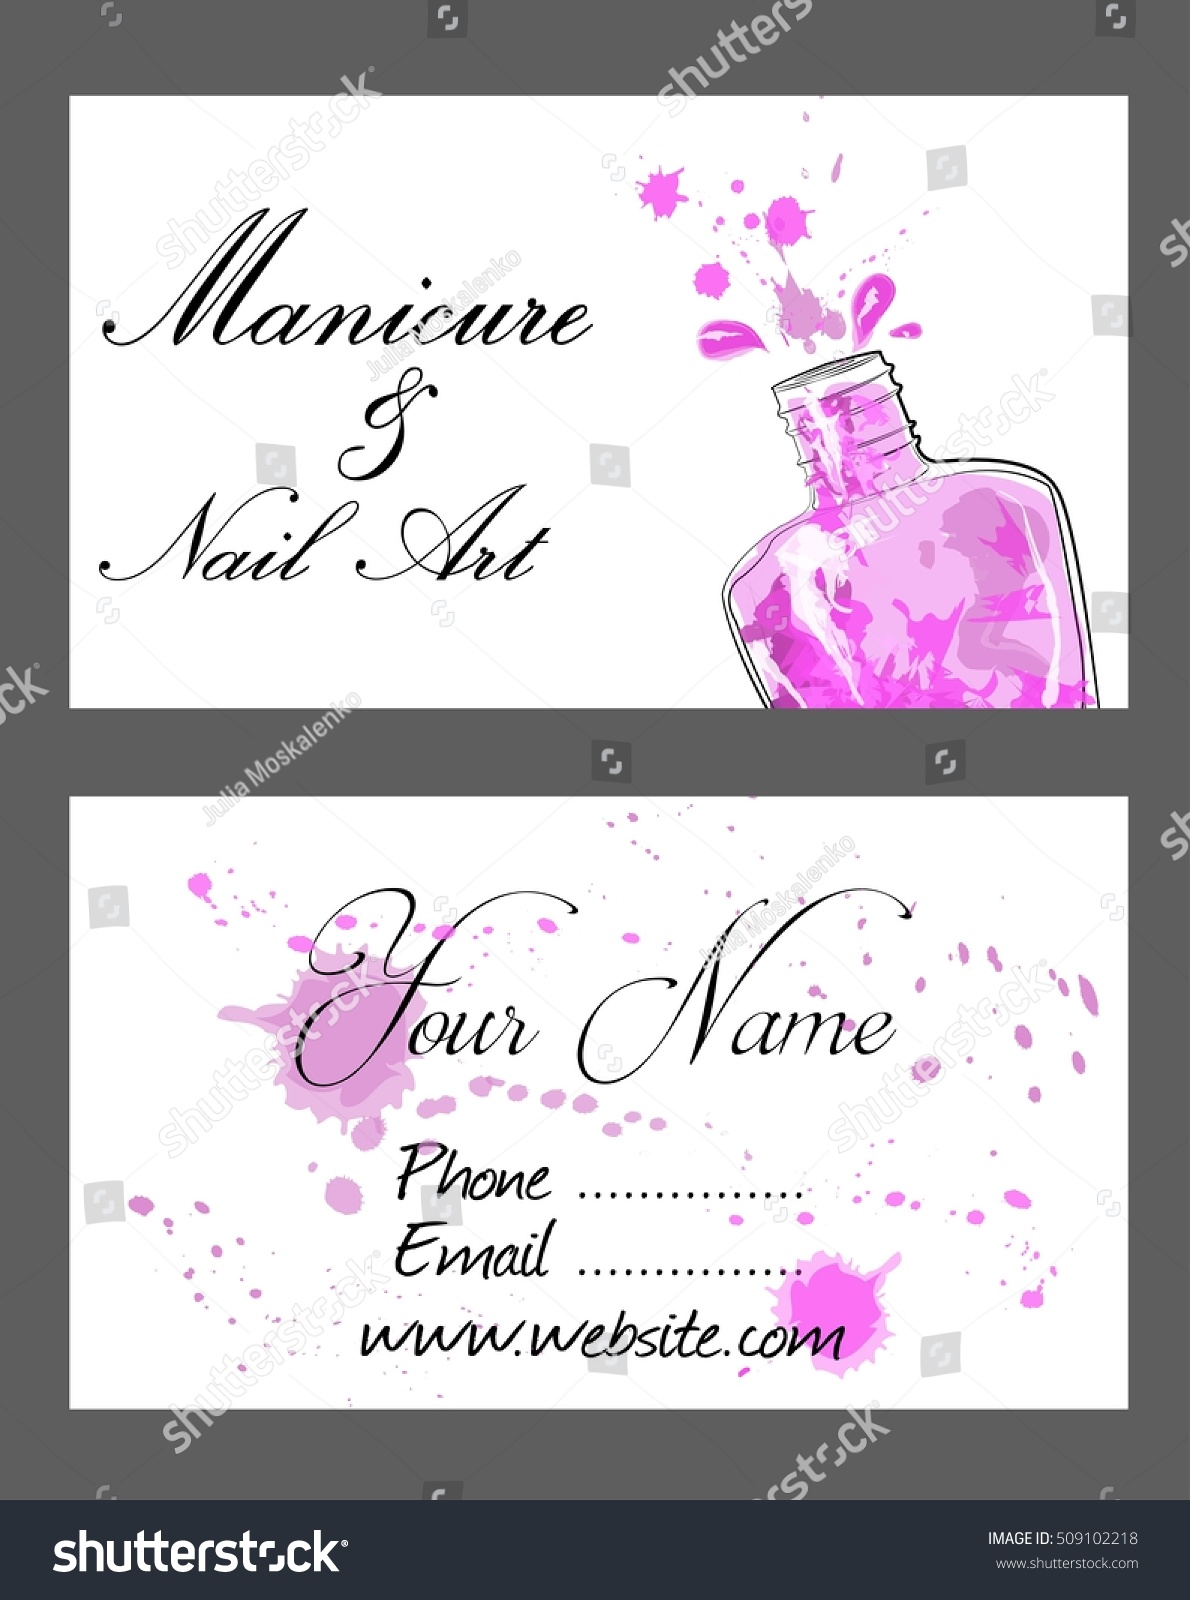 Nail Art Ideas » Nail Art Business Cards - Pictures of Nail Art ...